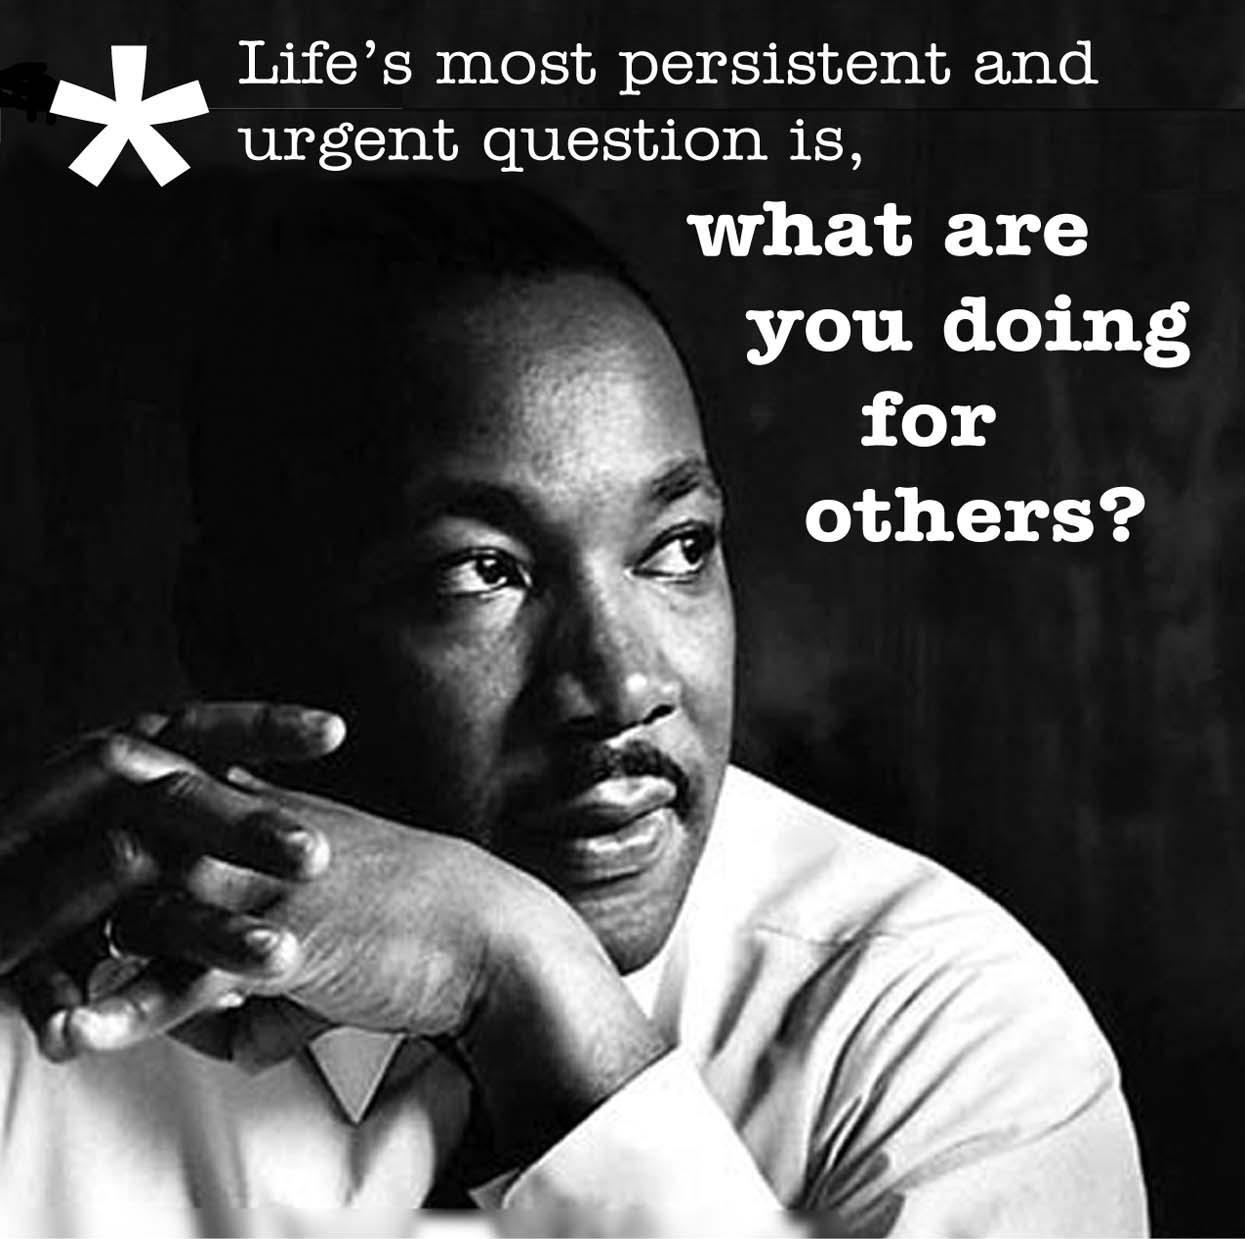 Images Of Martin Luther King Quotes January 21 2013 March In Honor Of Drmartin Luther King Jr